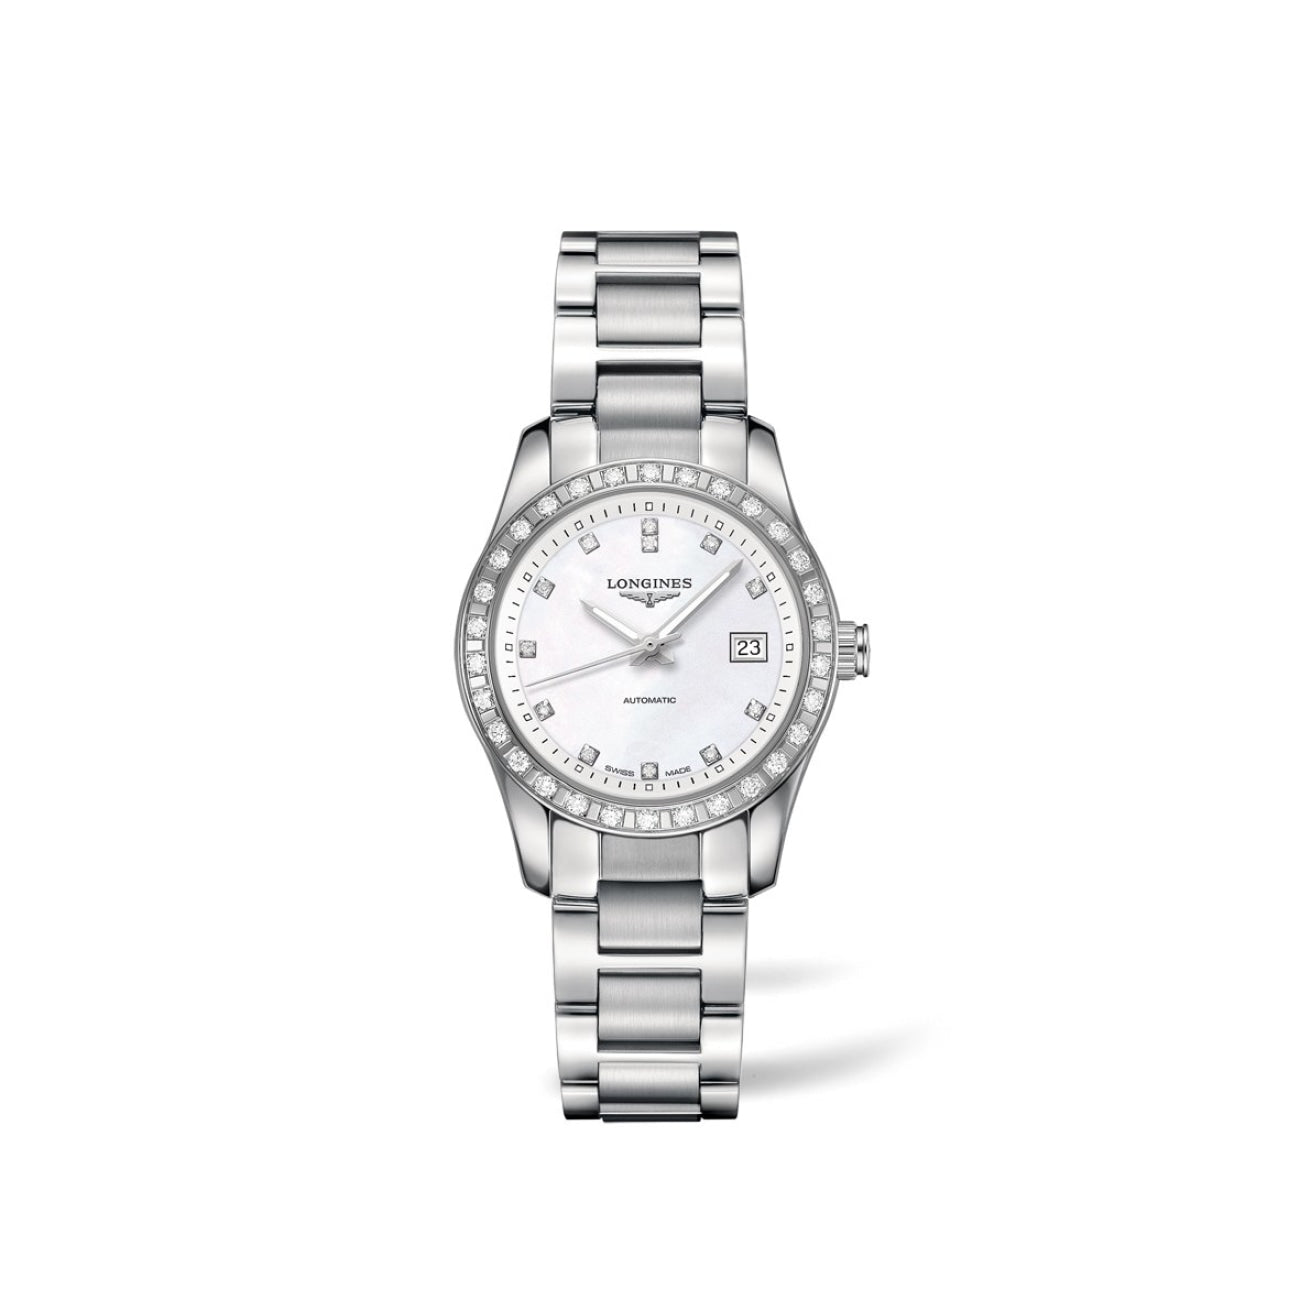 Longines Watches - Conquest Classic | Manfredi Jewels